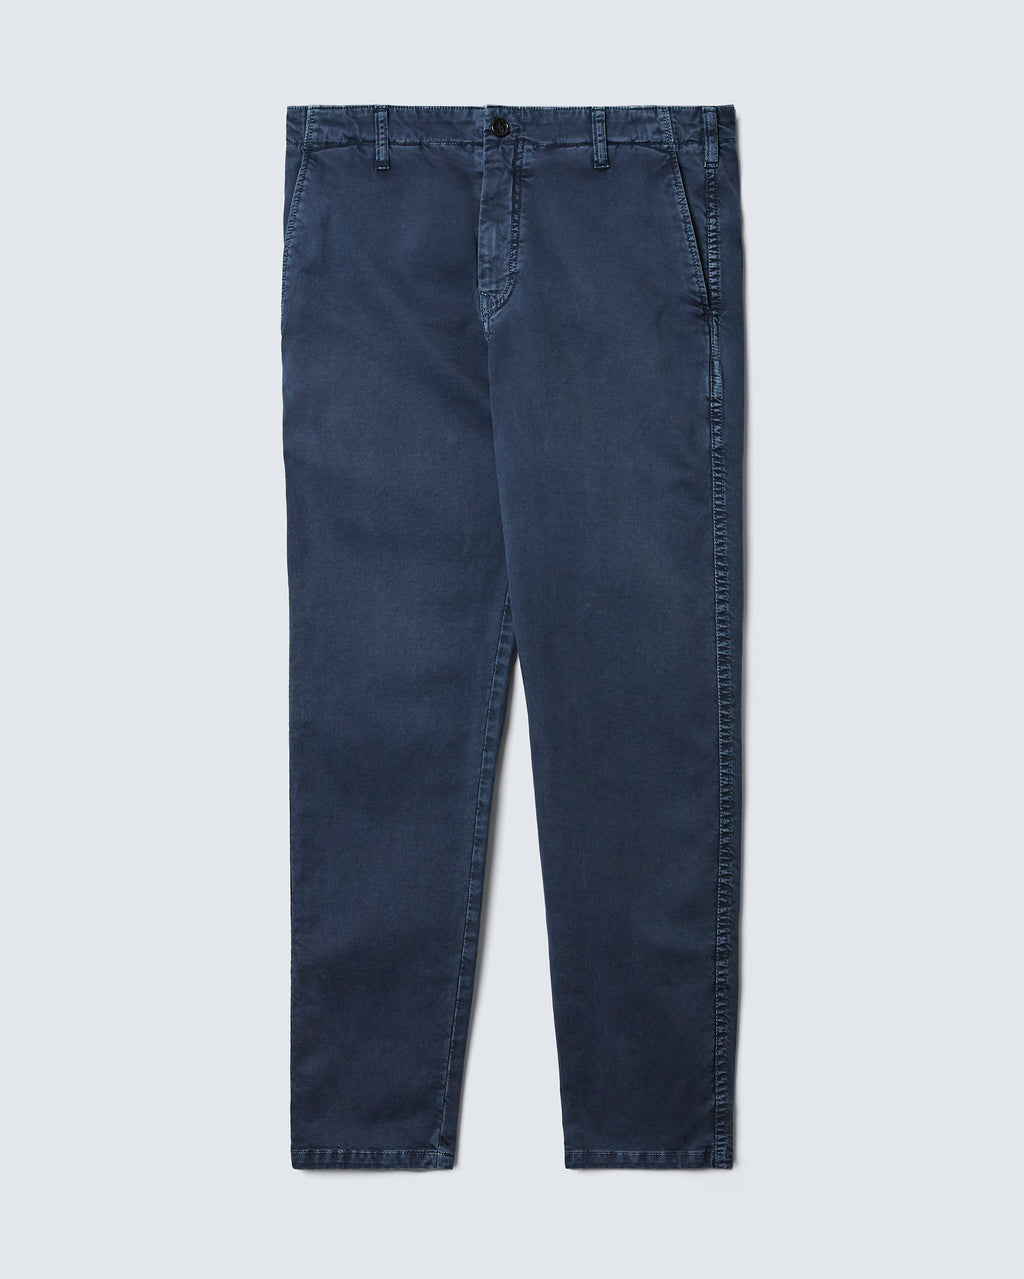 The Modern Slim Trouser in Navy